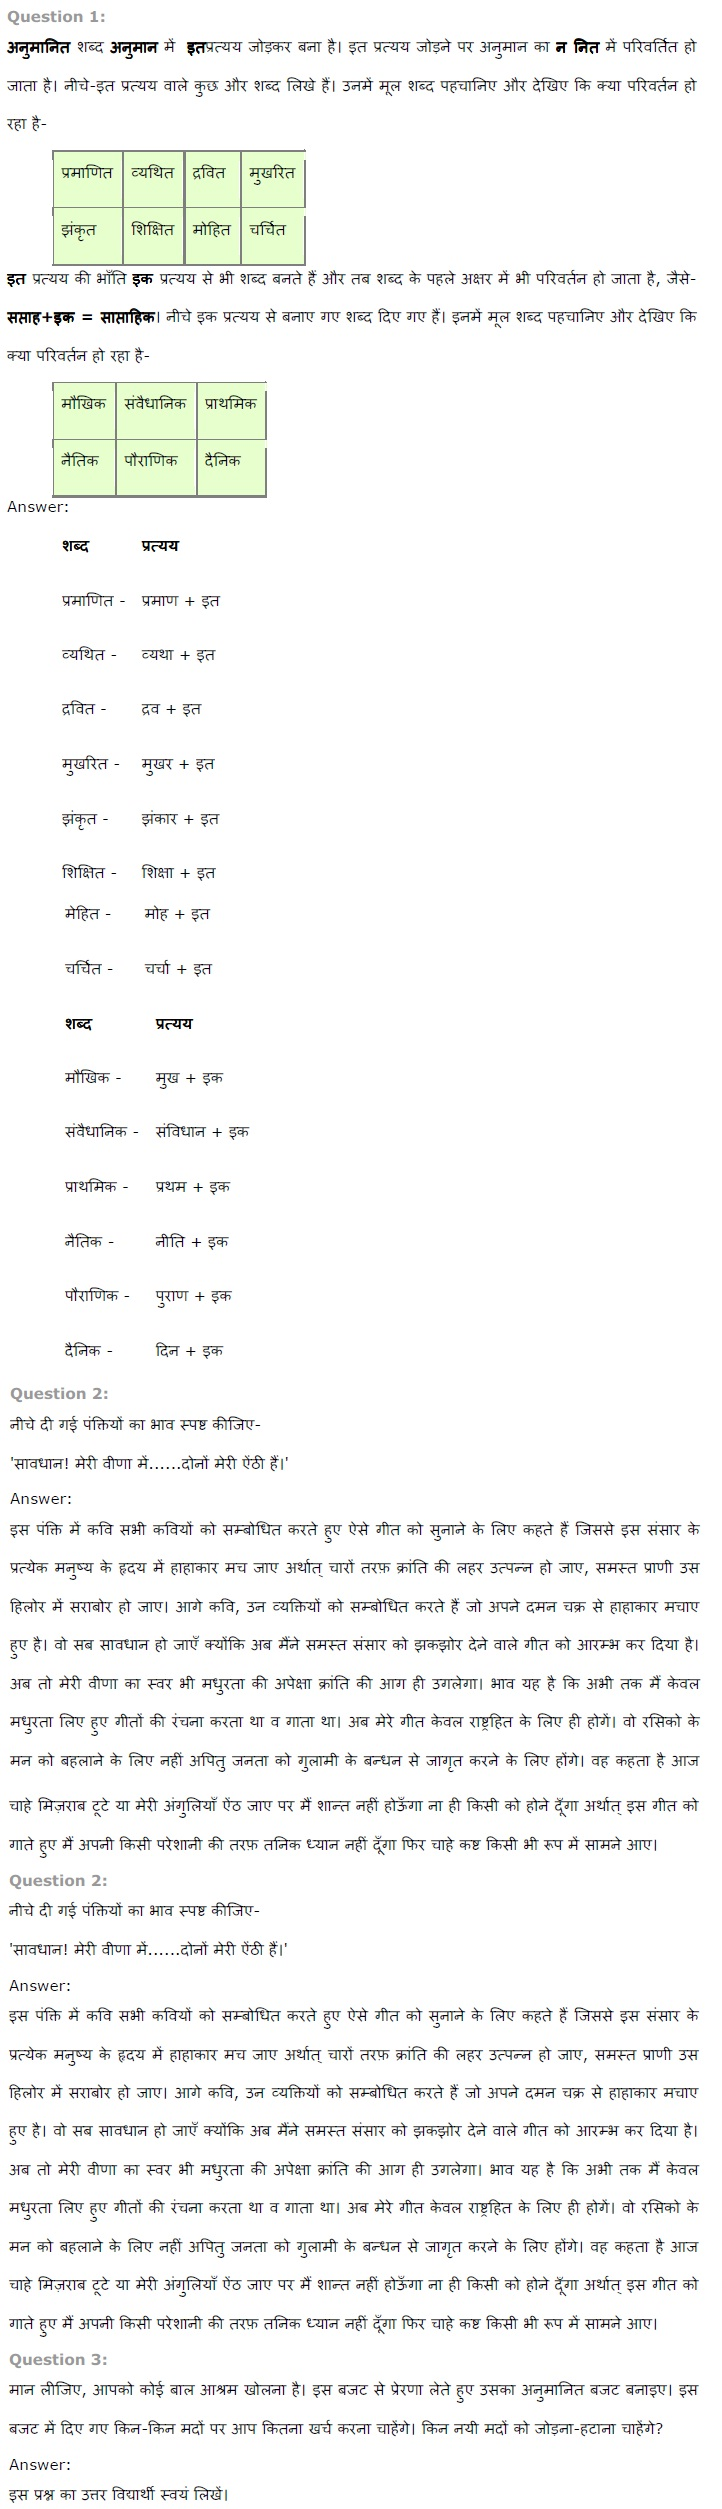 NCERT Solutions for Class 7th Hindi Chapter 20 विप्लव गायन